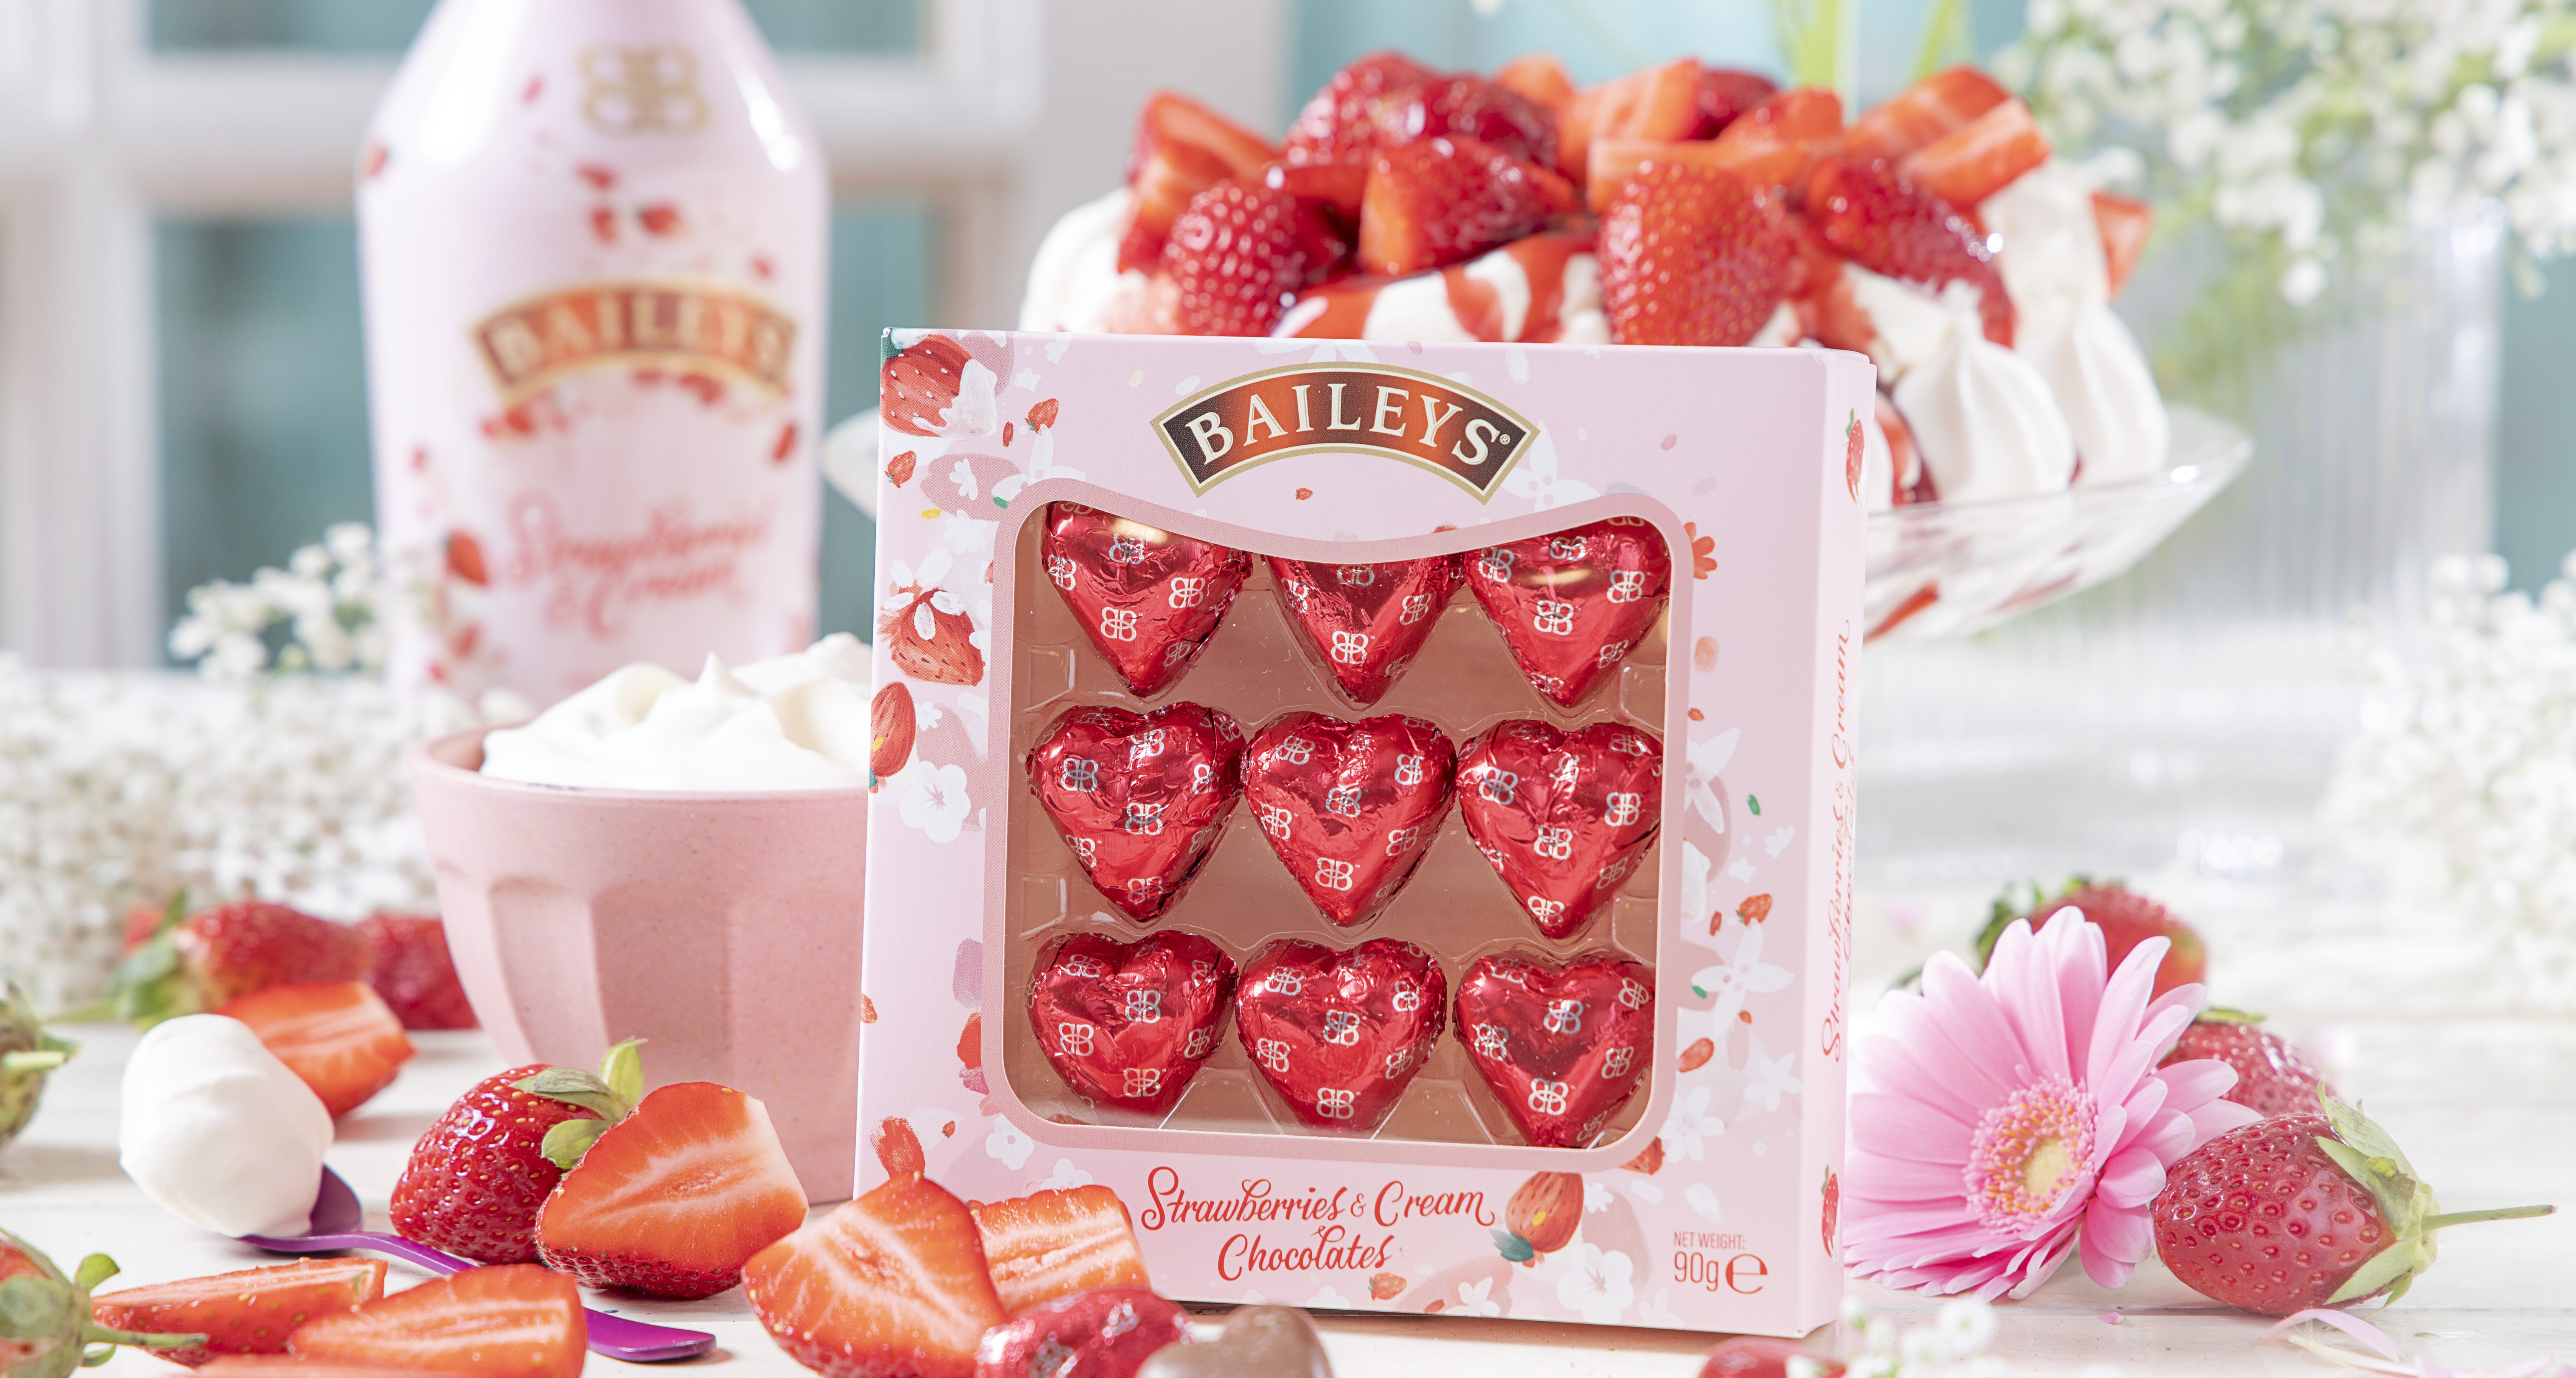 Baileys launches chocolate hearts filled with its Strawberries & Cream liqueur for Valentine's Day